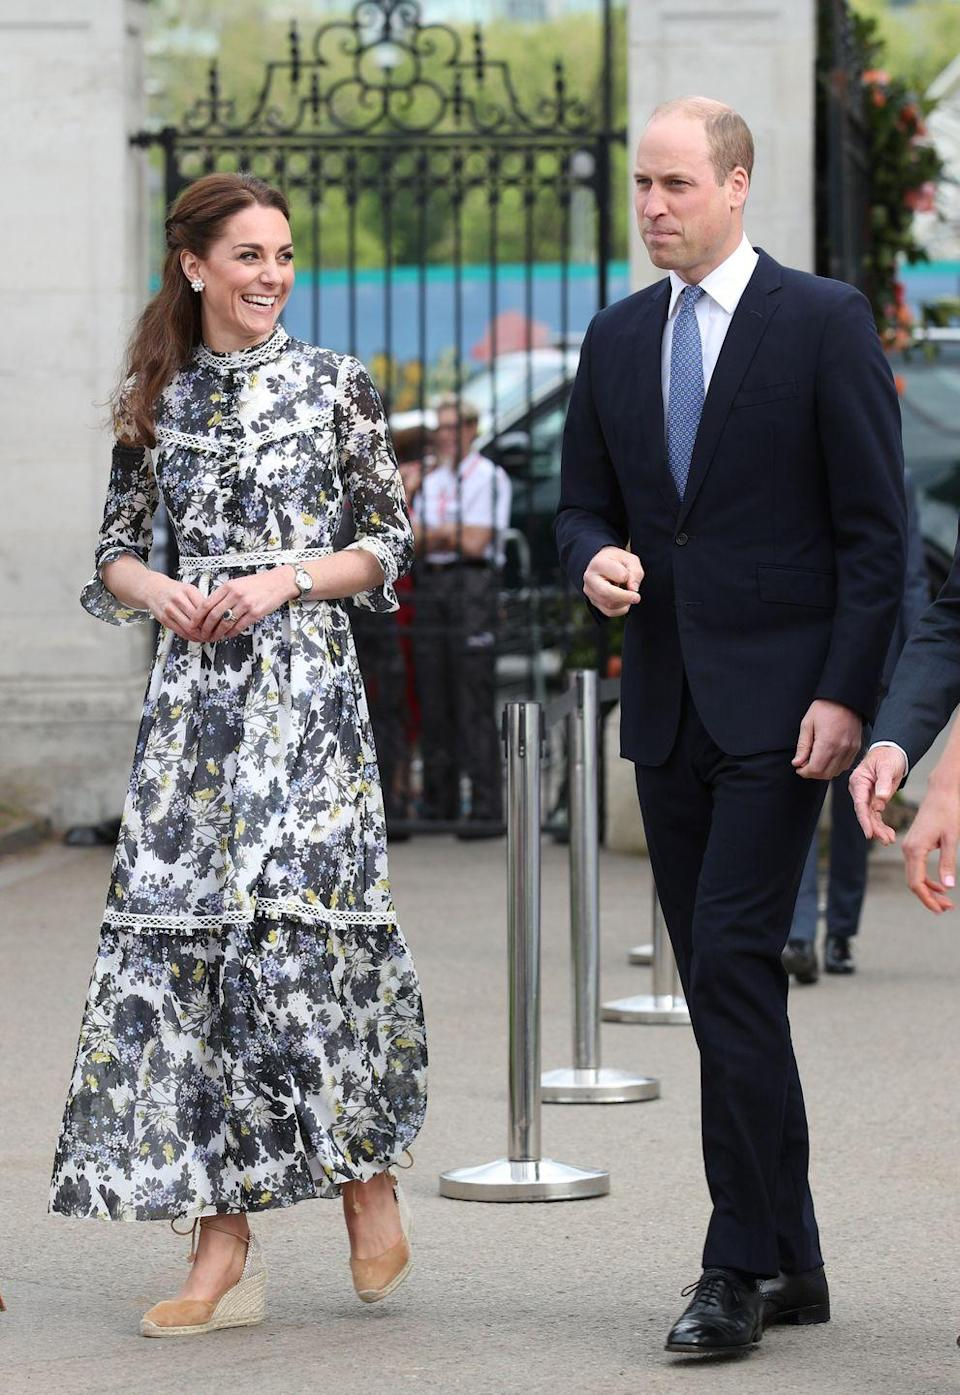 """<p>To show the Queen a garden she'd designed at the Chelsea Flower Show,<a href=""""https://www.townandcountrymag.com/style/fashion-trends/a27530823/kate-middleton-erdem-dress-chelsea-flower-show-2019/"""" rel=""""nofollow noopener"""" target=""""_blank"""" data-ylk=""""slk:the Duchess went for a high-necked, floral Erdem dress"""" class=""""link rapid-noclick-resp""""> the Duchess went for a high-necked, floral Erdem dress</a>, along with a pair of summery espadrilles.</p>"""